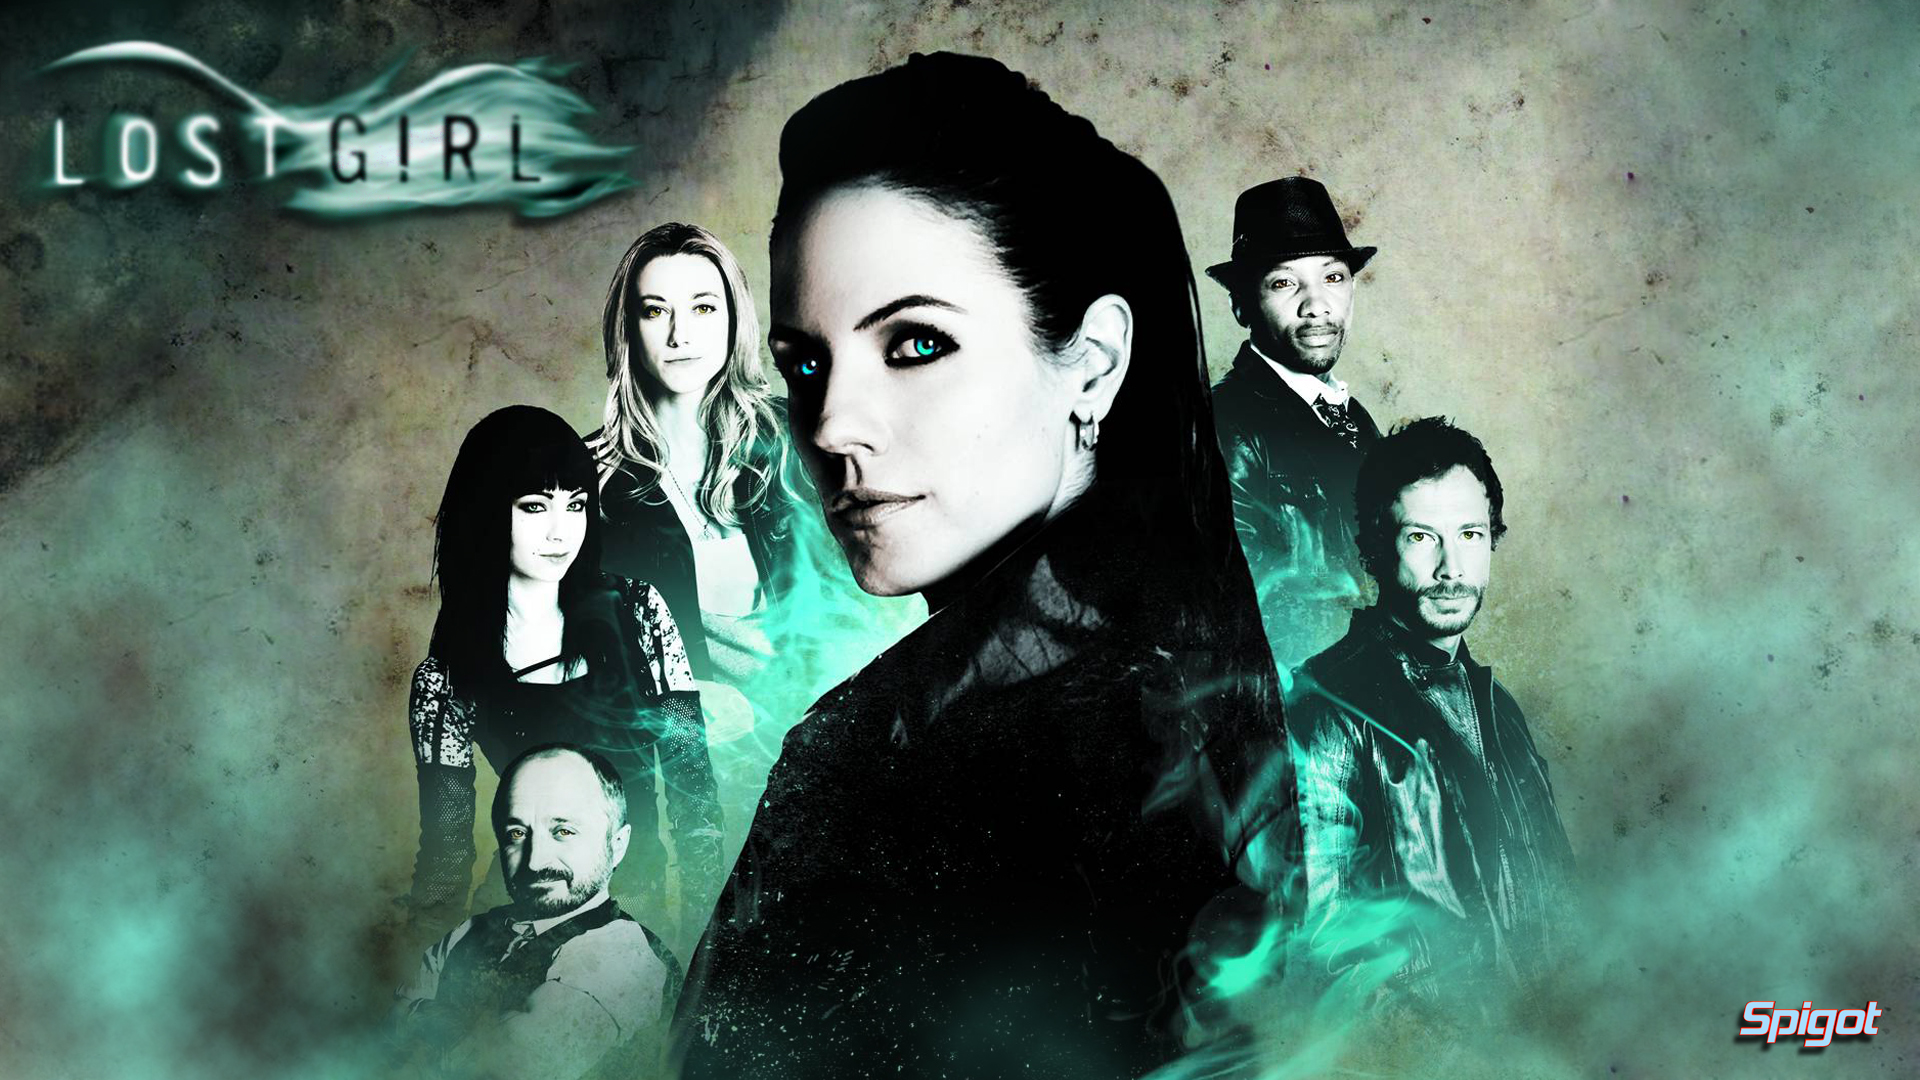 Lost Girl Wallpapers and Background Images   stmednet 1920x1080